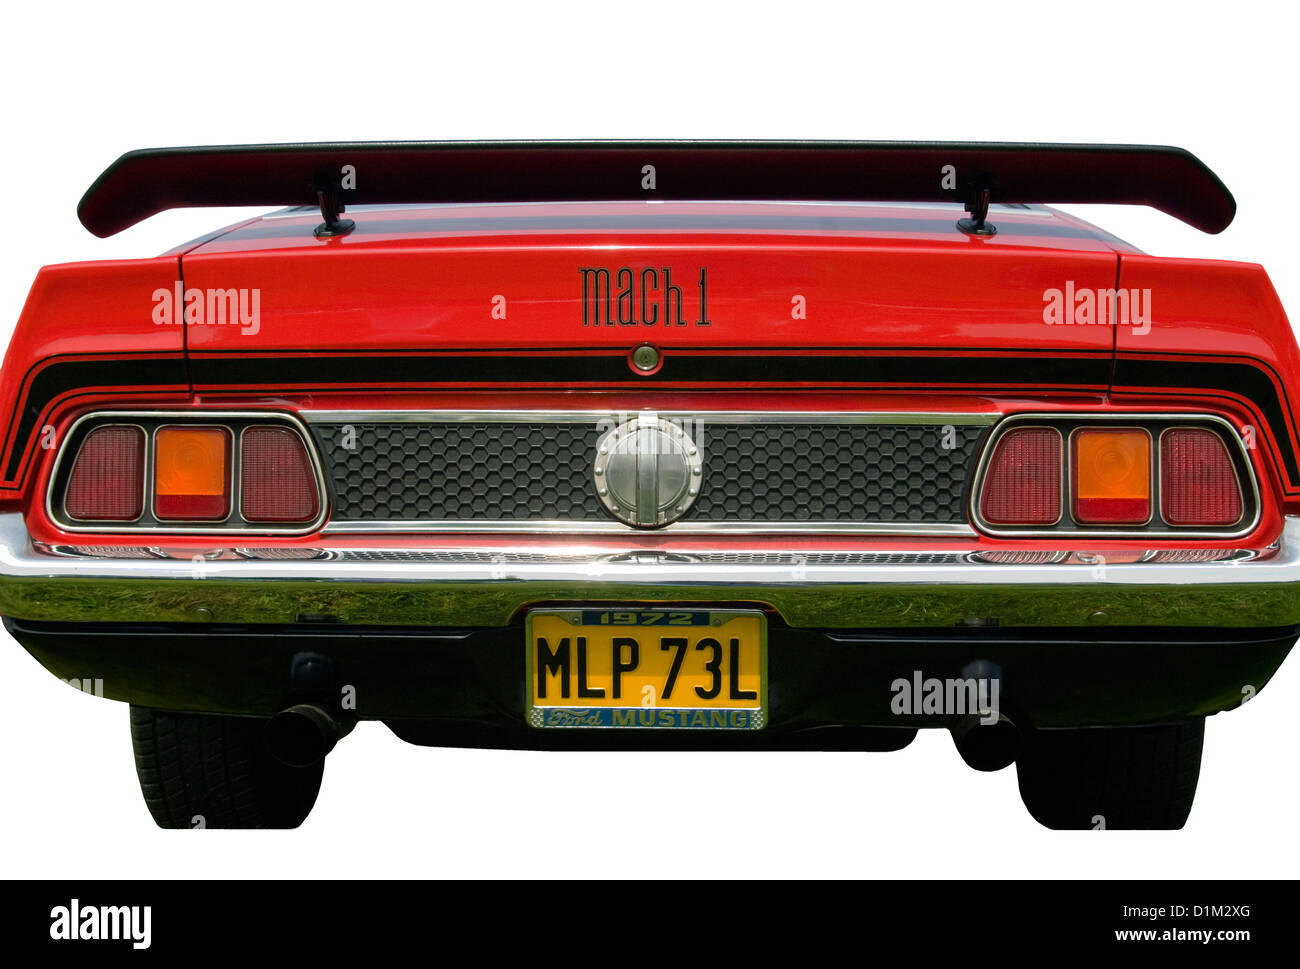 1971 Ford Mustang Mach 1 Fastback Stock Photos Images Rear Of A Red 1972 Image